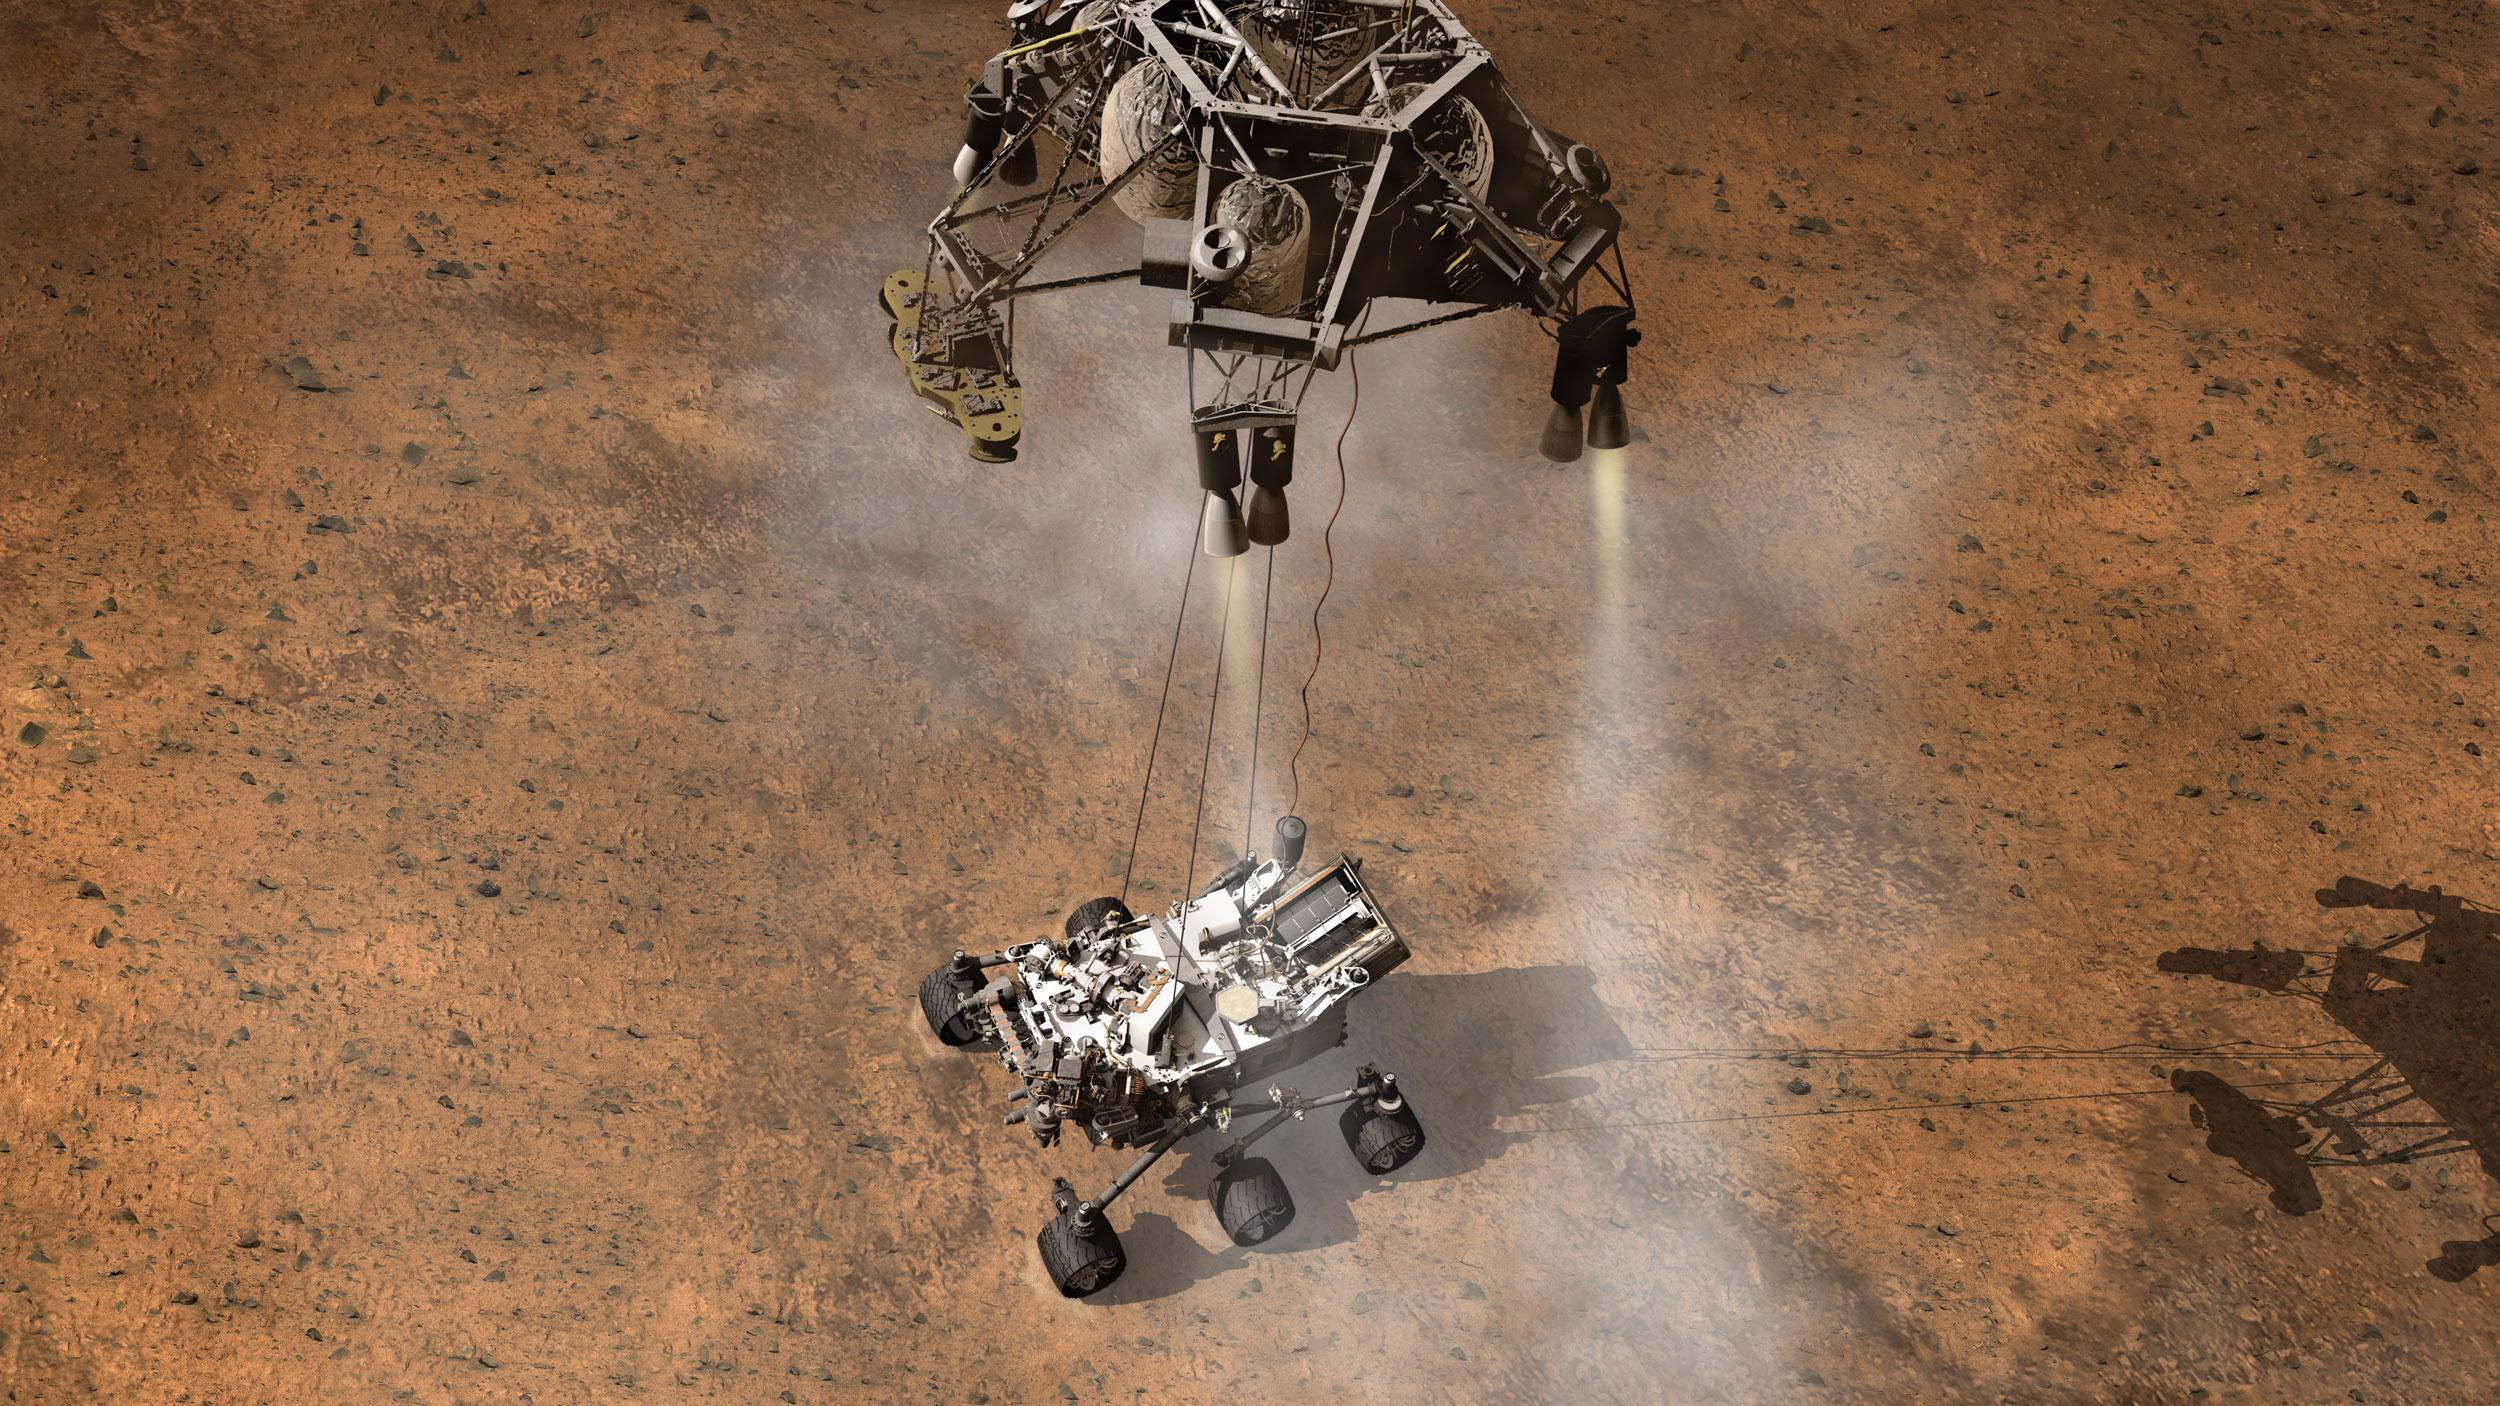 mars rover mission ends - photo #18